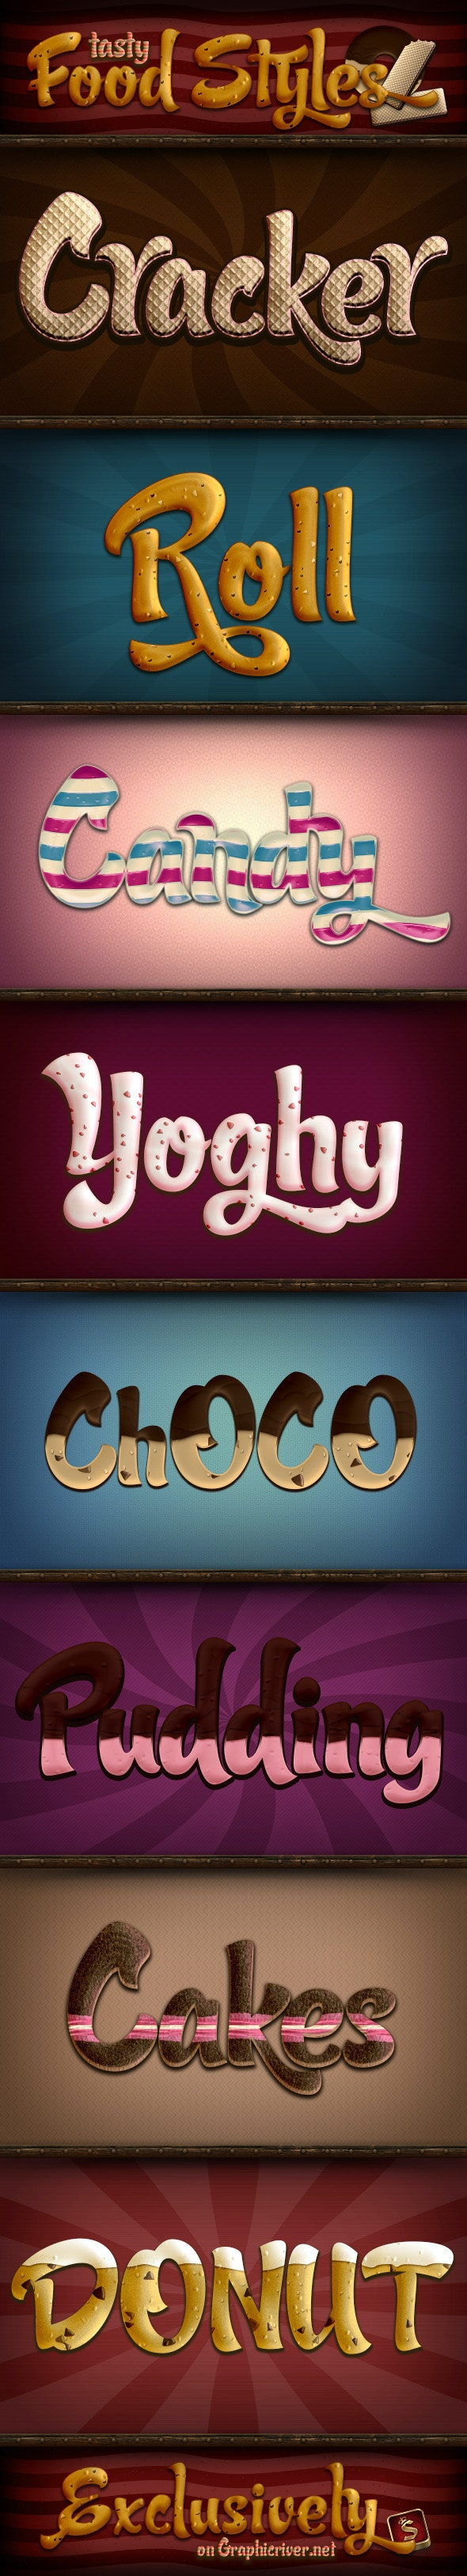 Tasty Food Styles - Text Effects Styles